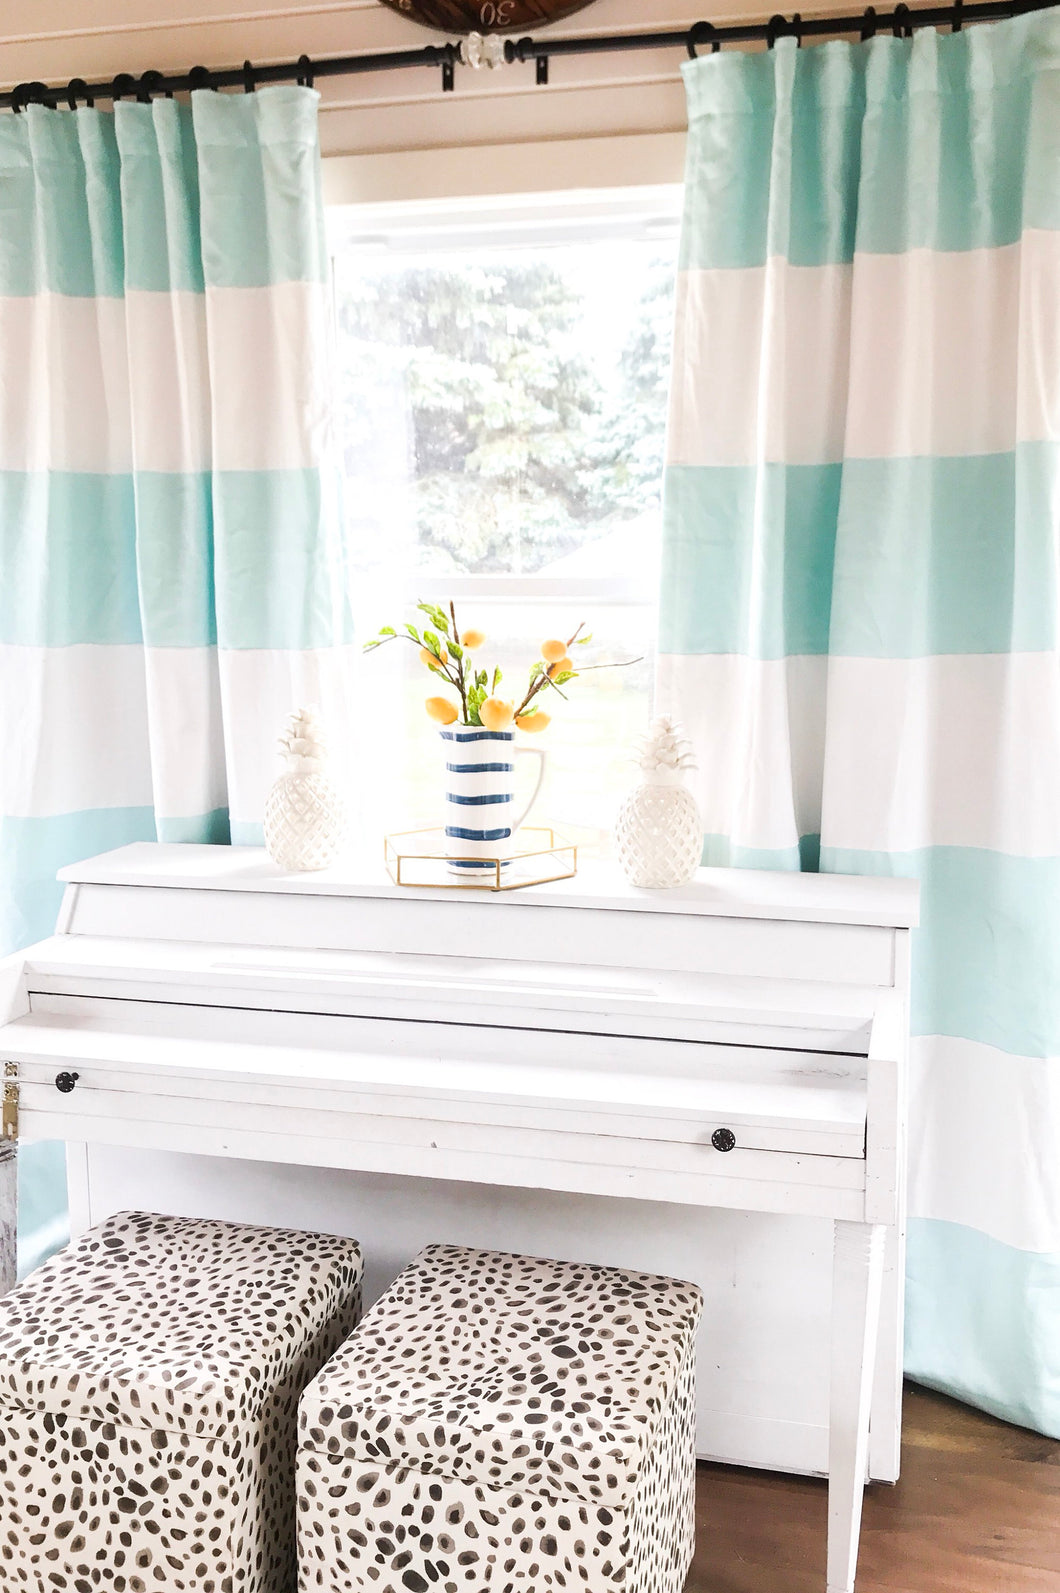 1 Pair Custom Sky Blue And White Striped Curtain Window Treatmeant S Frosting Home Decor